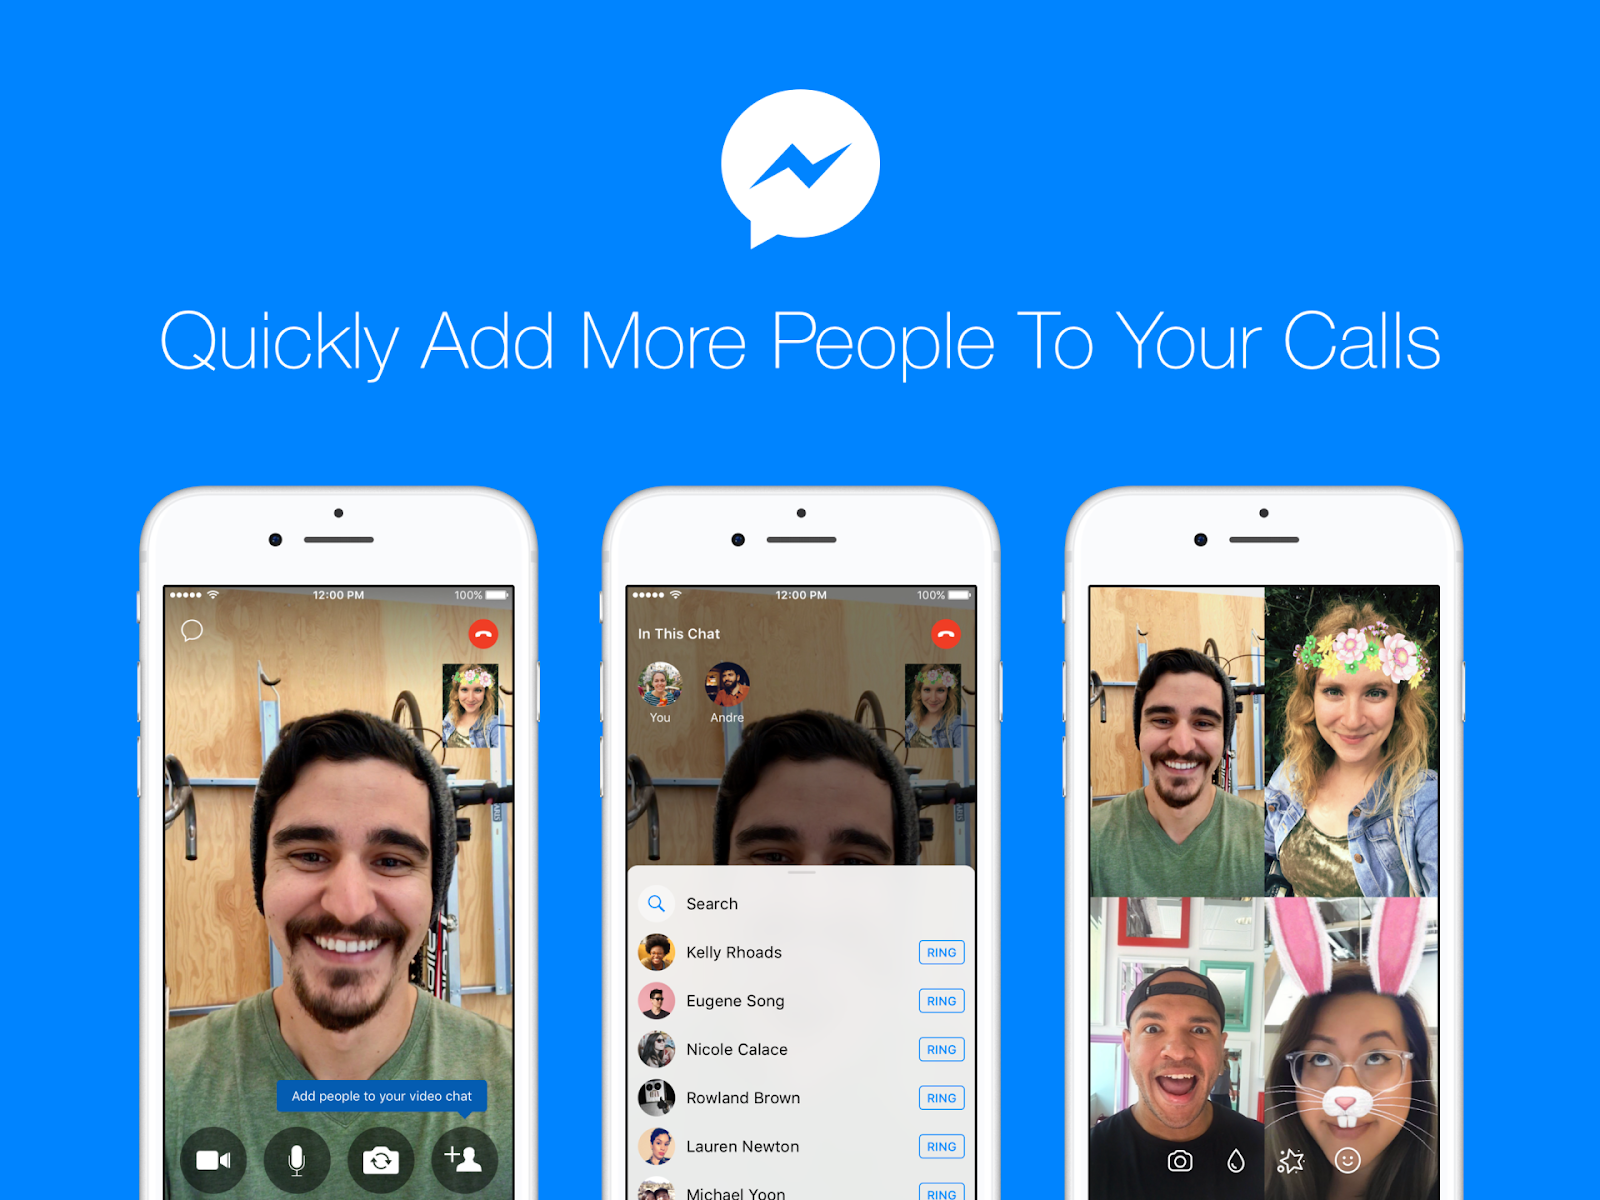 Add friends to video chat in Facebook Messenger